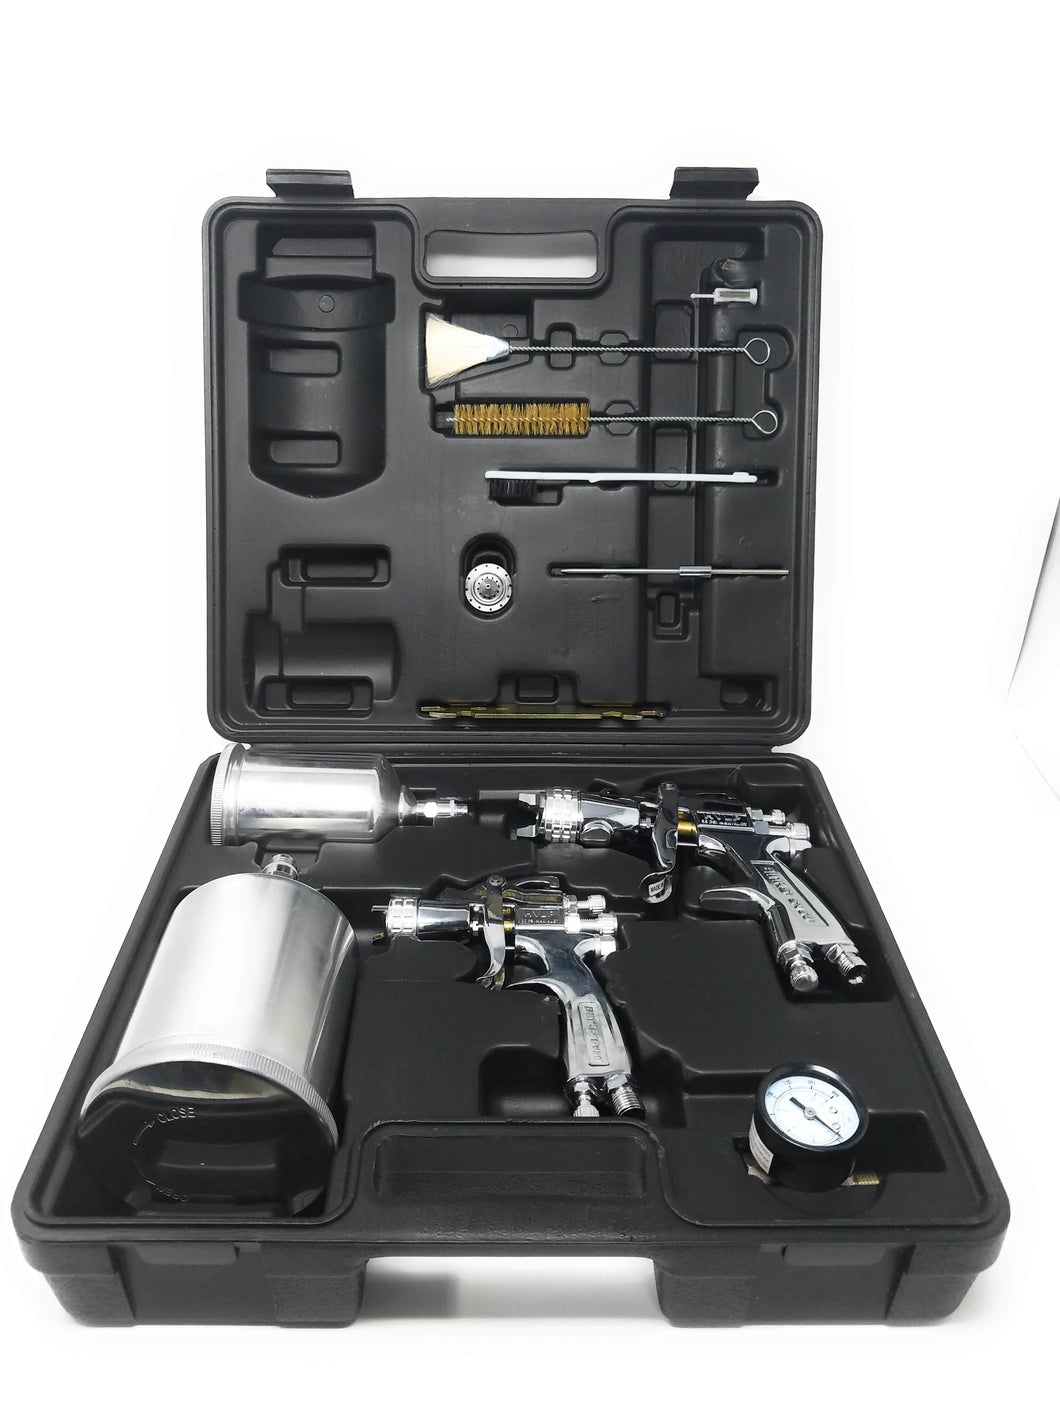 BINKS 9I-3170 SV50 HVLP GRAVITY SPRAY GUN COMBO SET